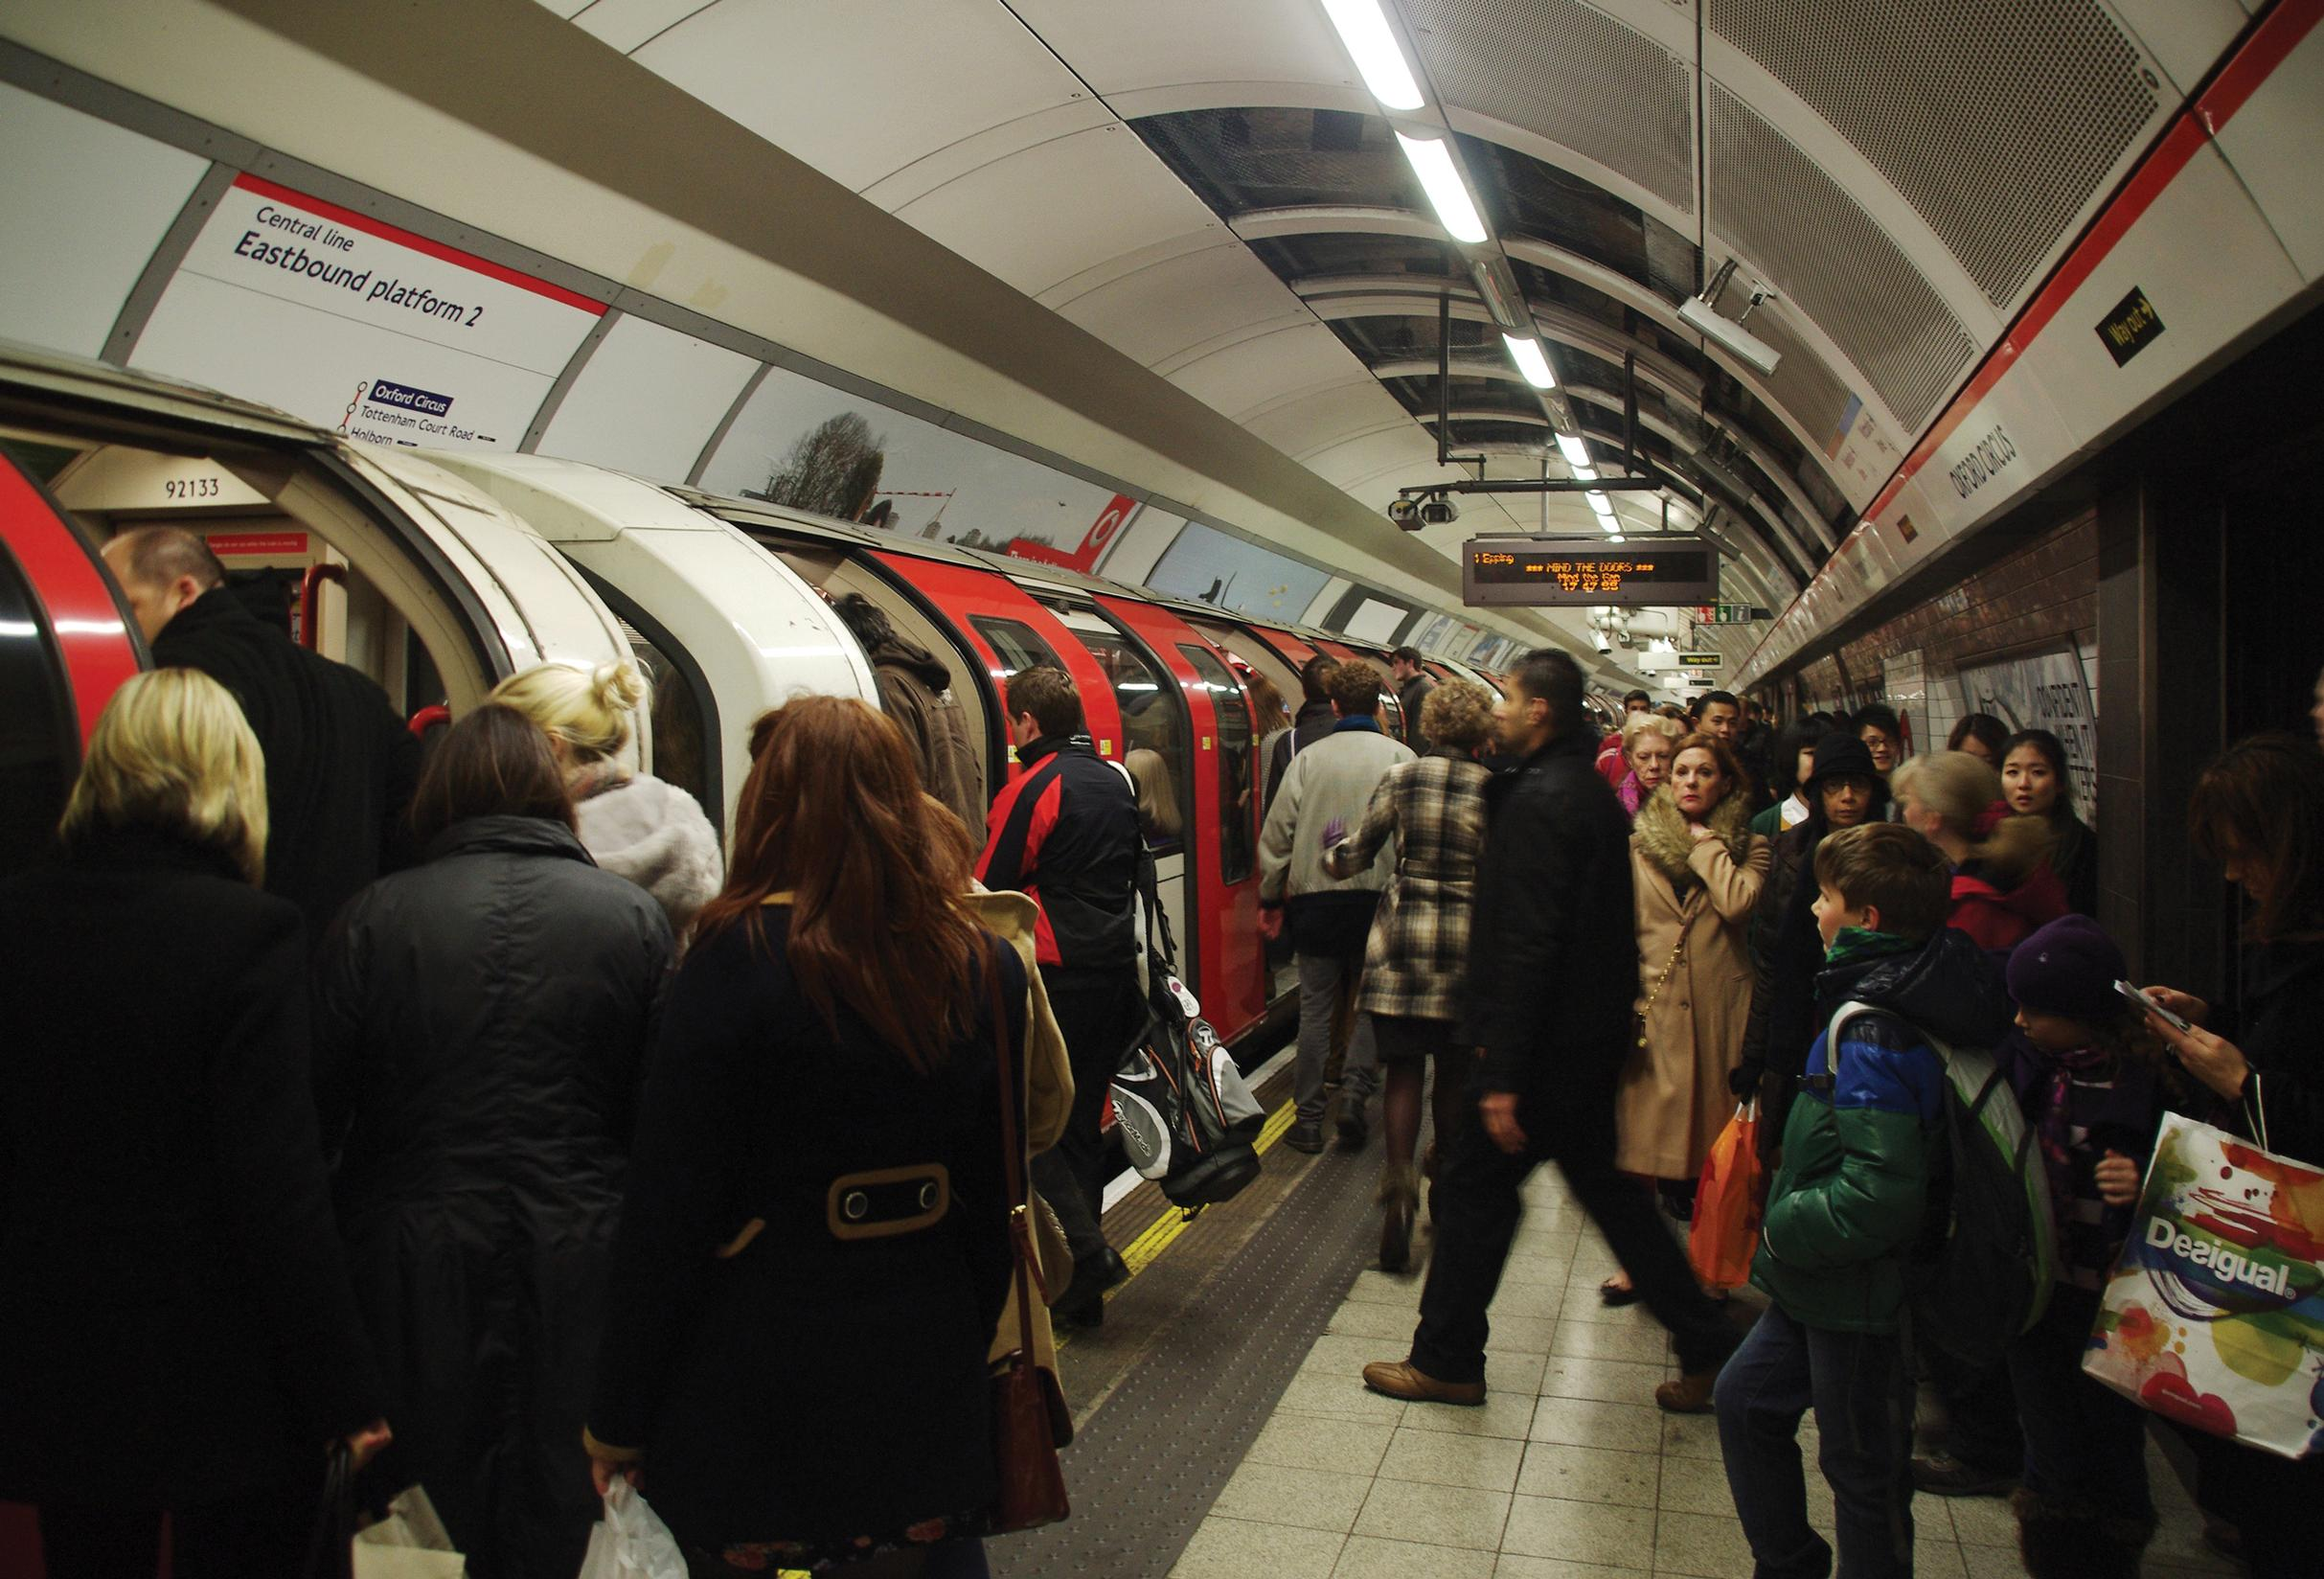 TfL cuts fare projections by £1.6bn over the next five years